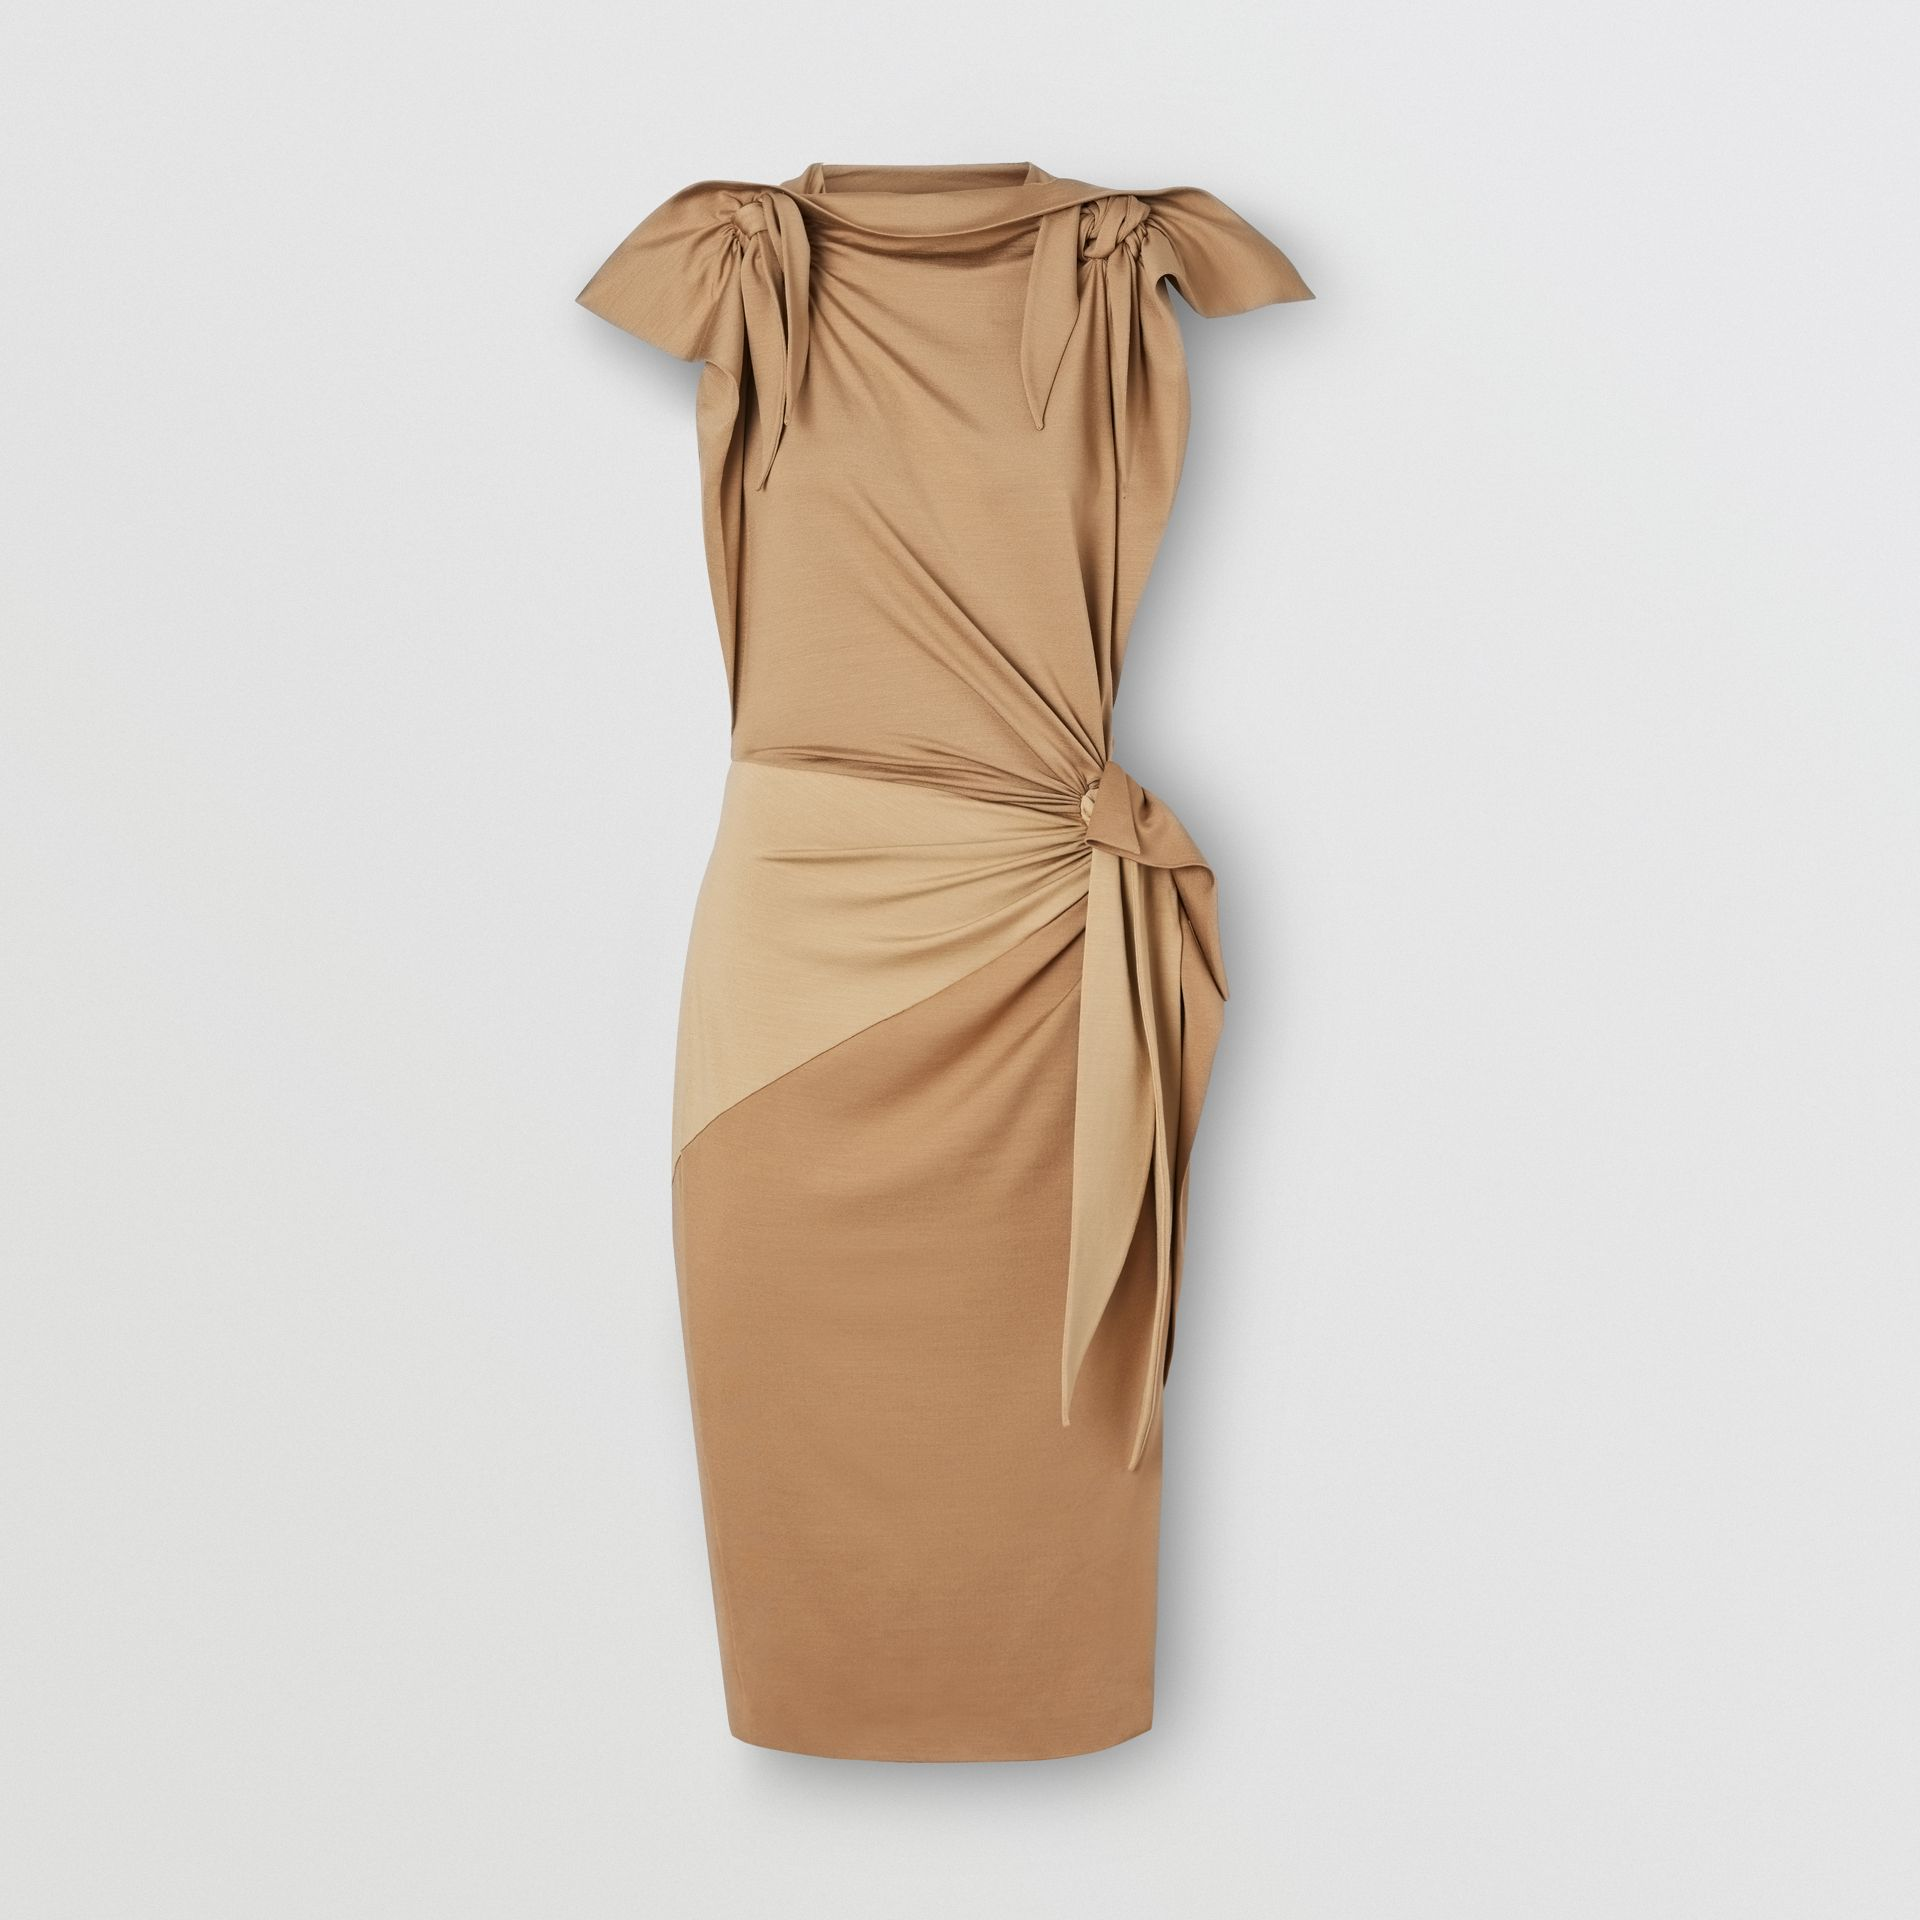 Tie Detail Tri-tone Silk Jersey Dress in Wheat - Women | Burberry United States - gallery image 3